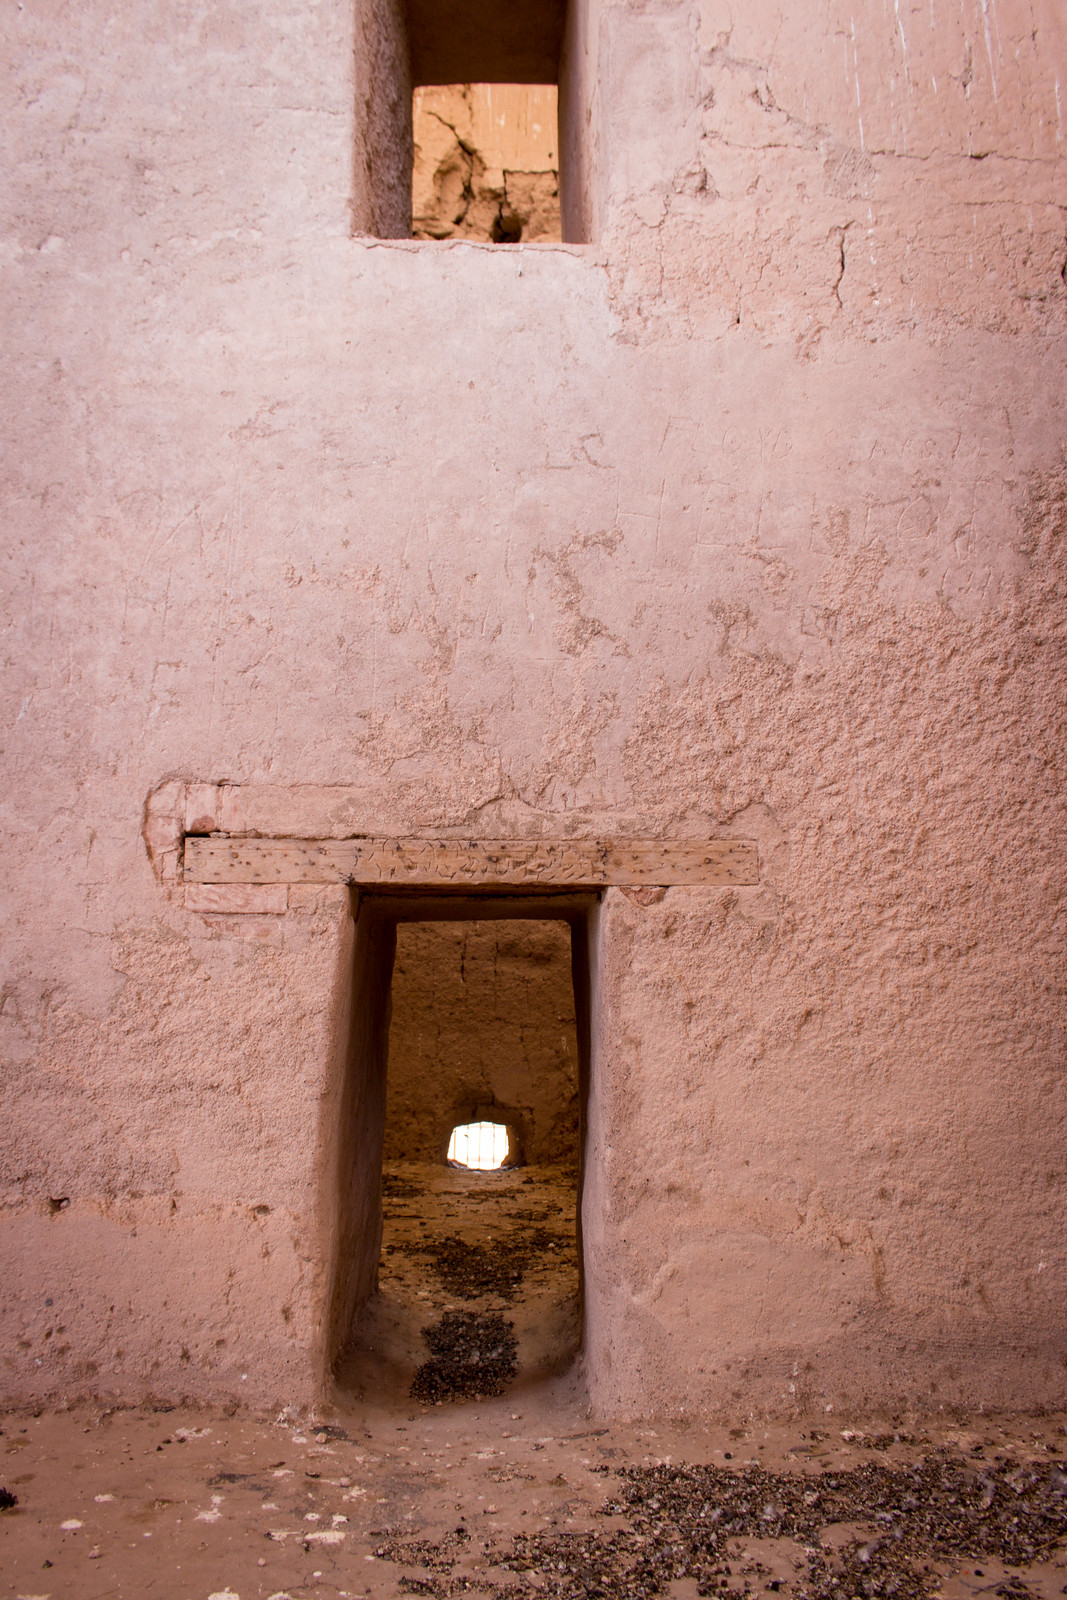 A doorway and a window cut into an earthen wall